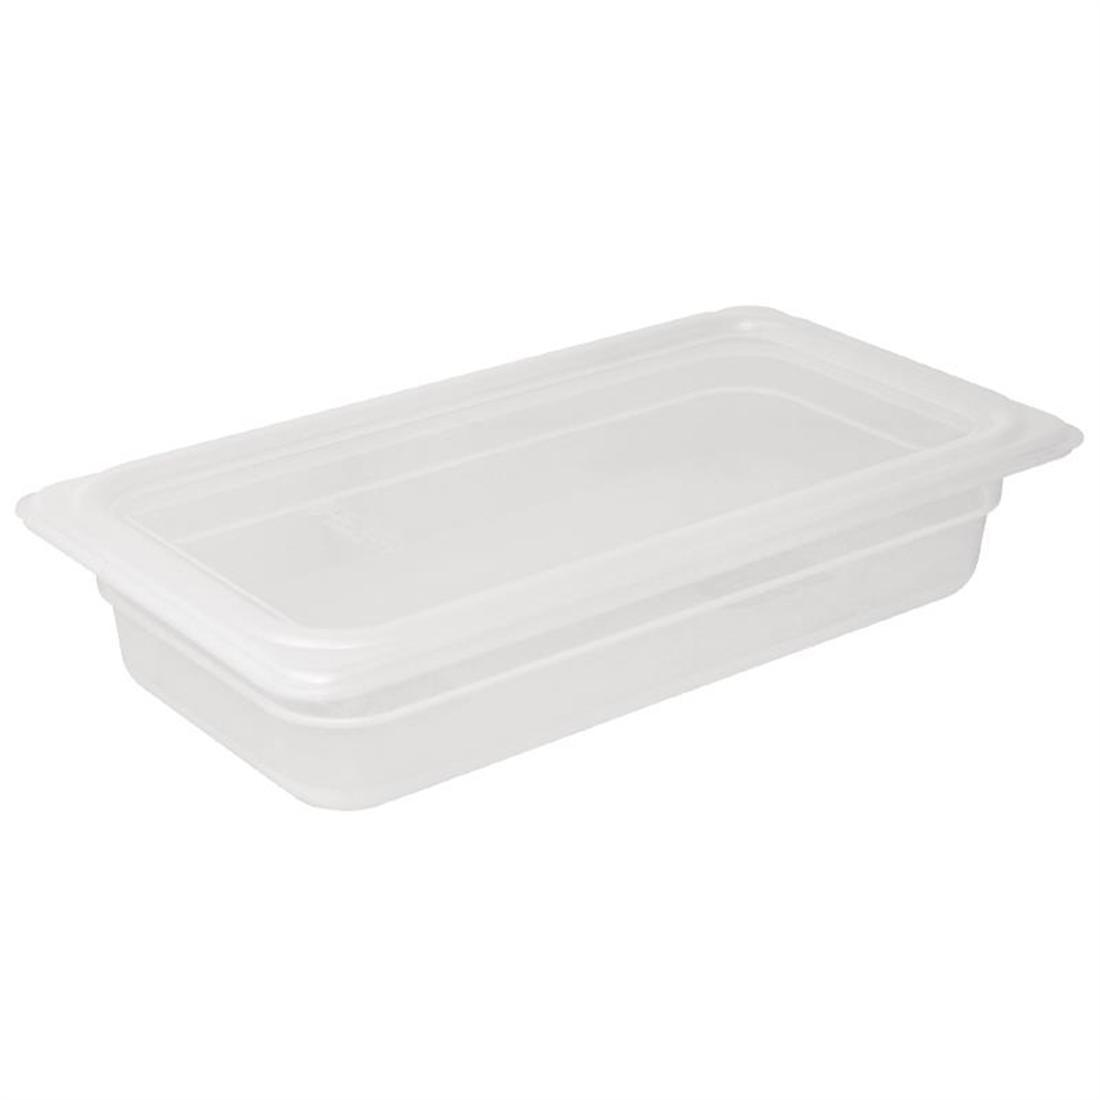 Vogue Polypropylene 1/3 Gastronorm Container with Lid 150mm - Pack of 4 - GJ520